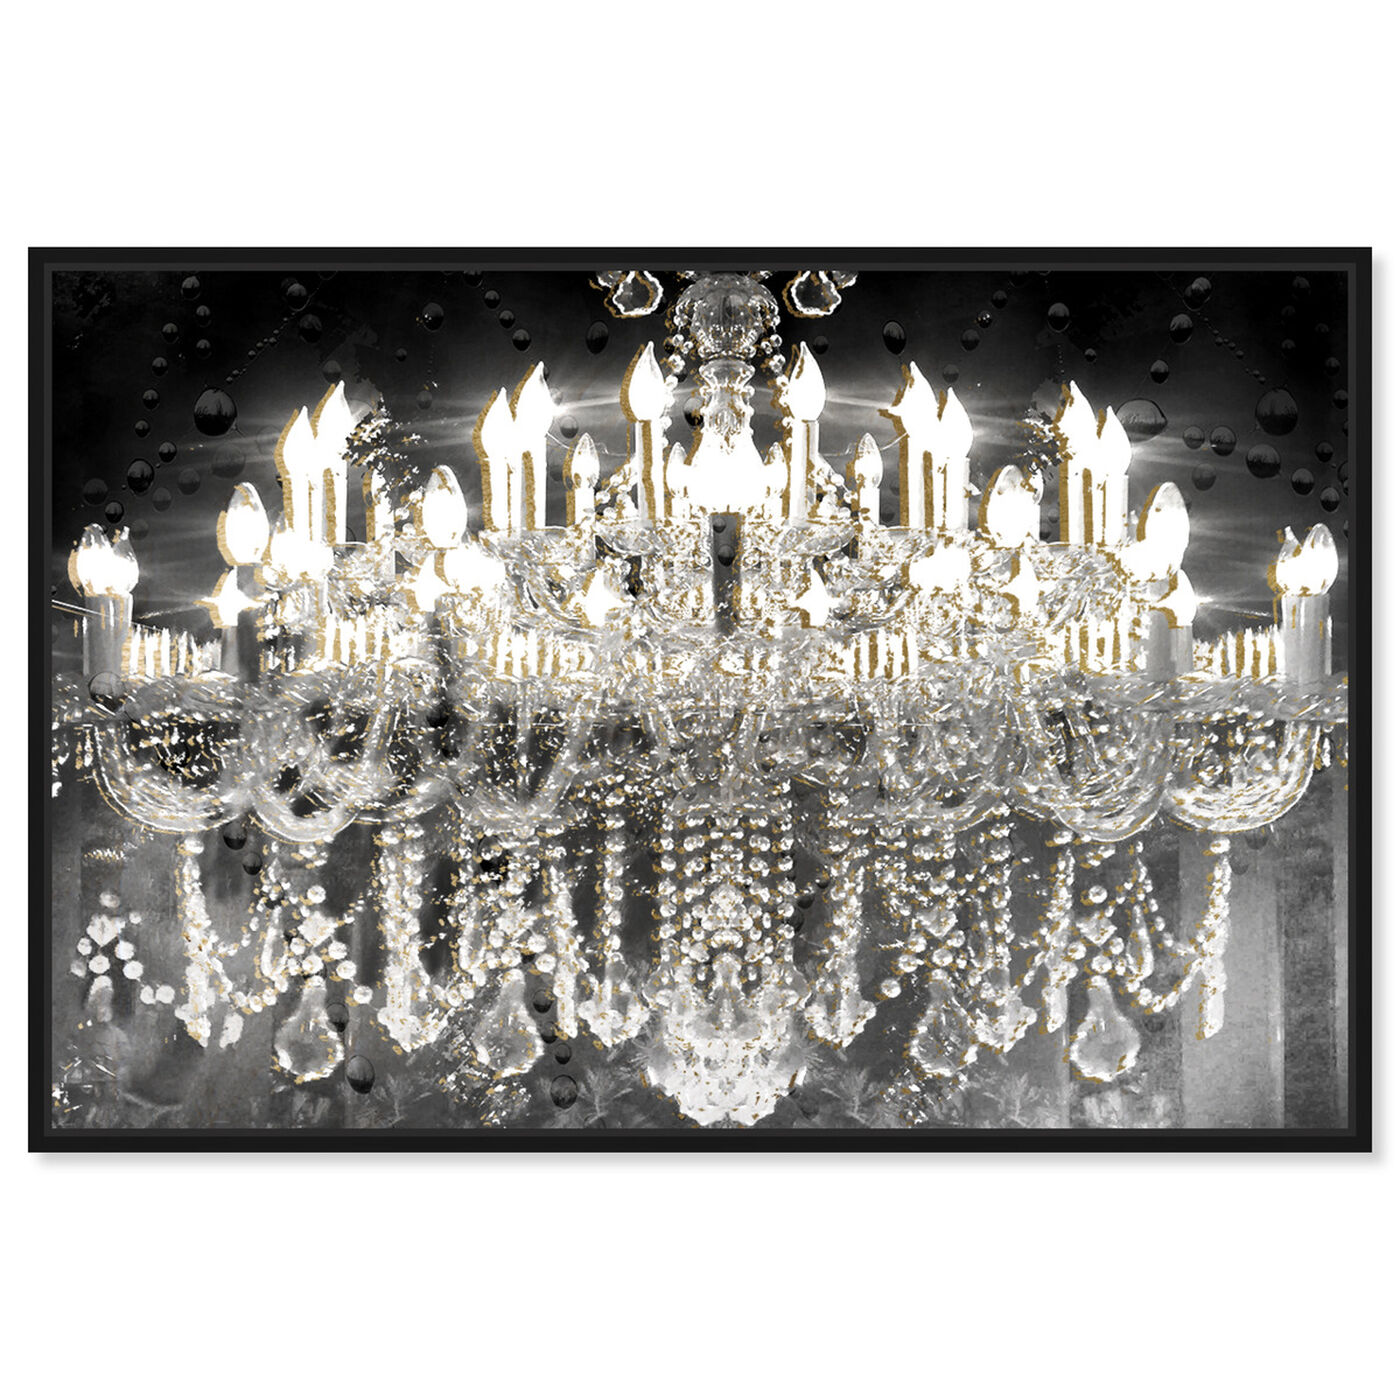 Front view of Black and Gold Diamond Entrance featuring fashion and glam and chandeliers art.